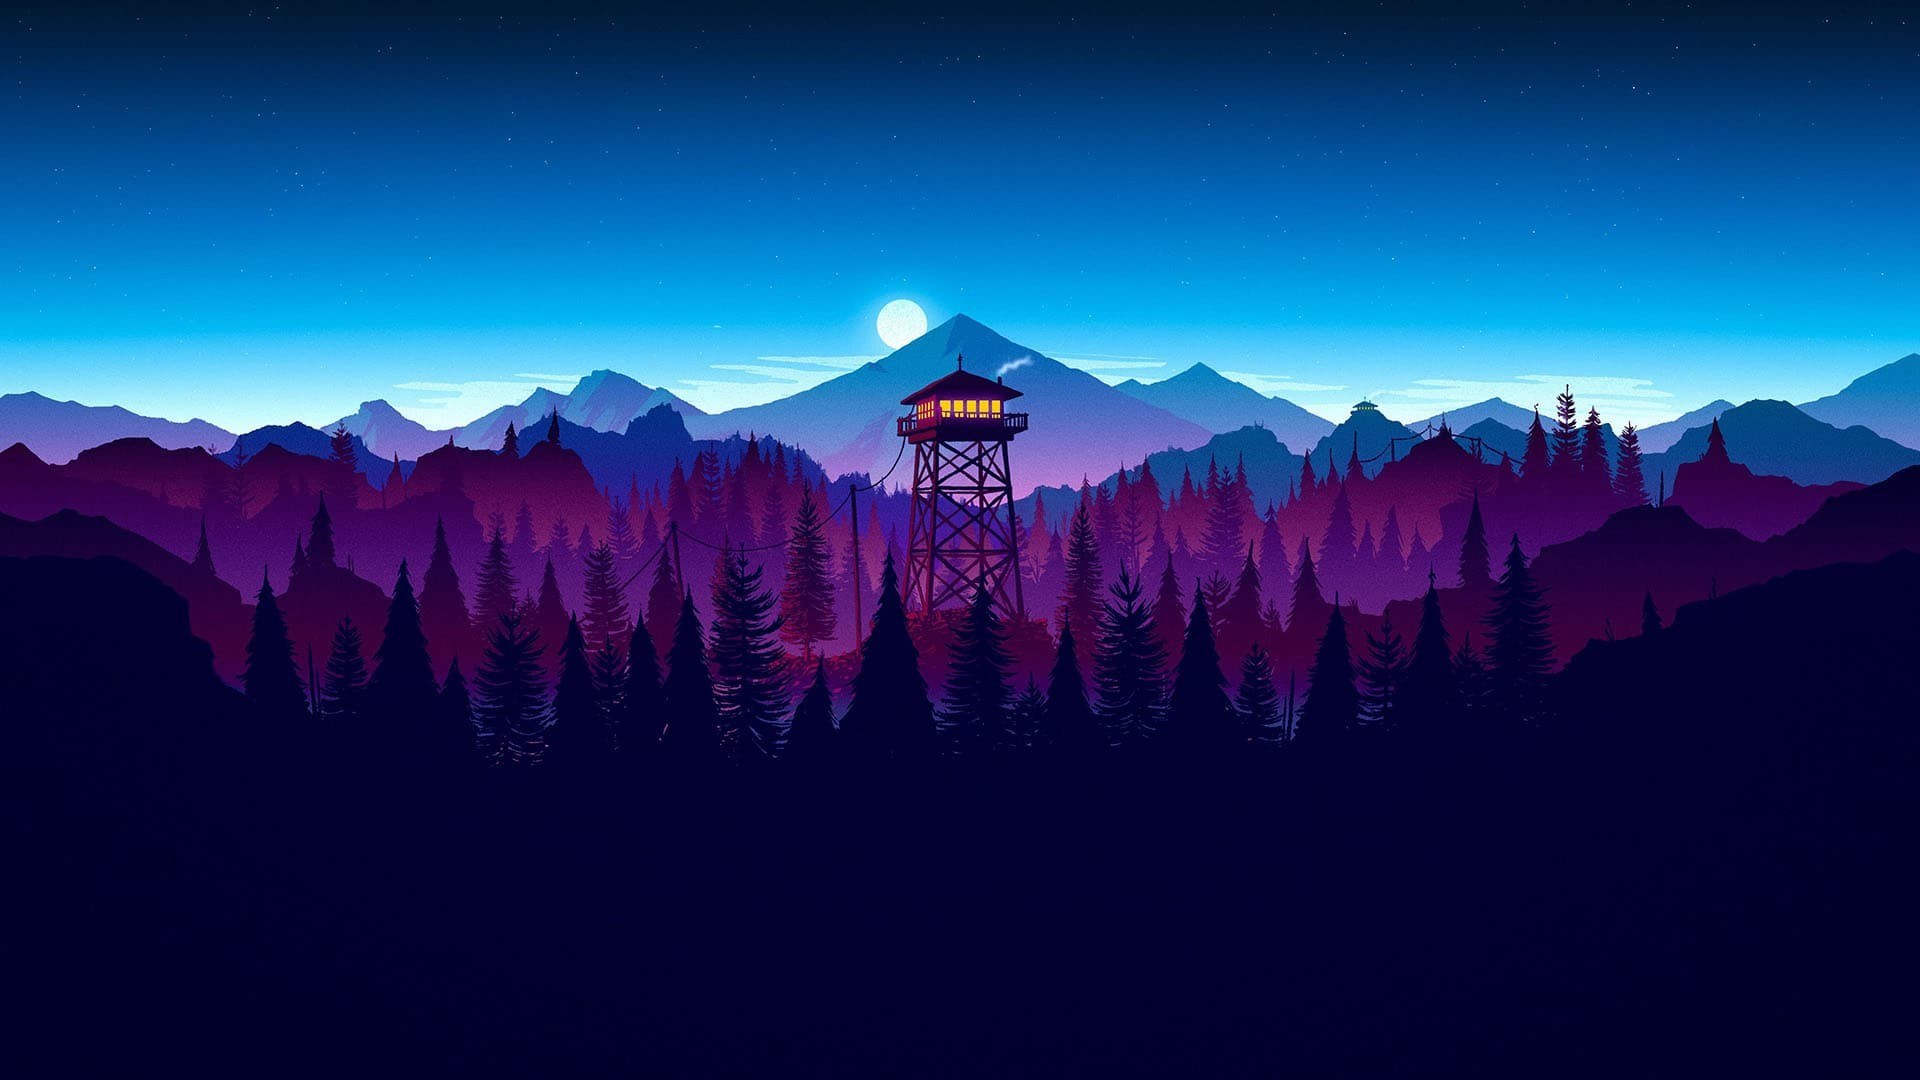 Www 1080walpaper Com: 38+ Firewatch Wallpapers ·① Download Free Beautiful High